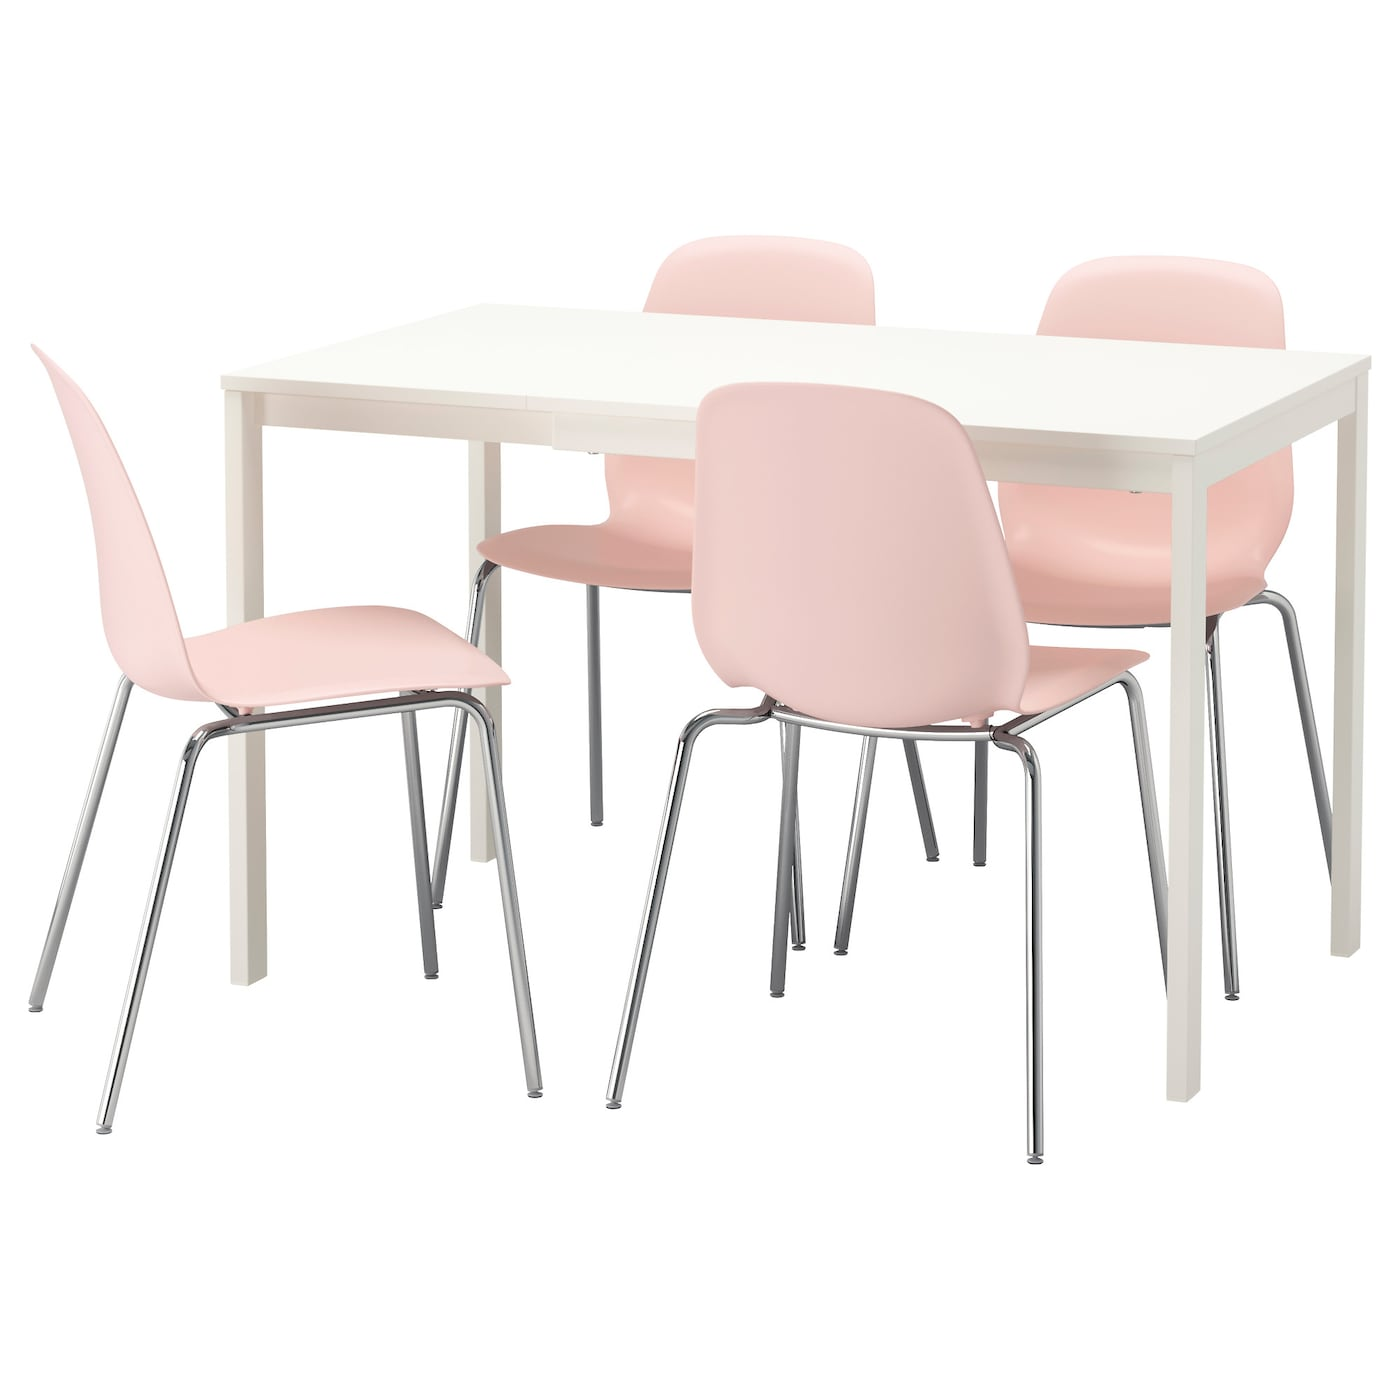 Leifarne vangsta table and 4 chairs white pink 120 180 cm for Ikea dining table and chairs set